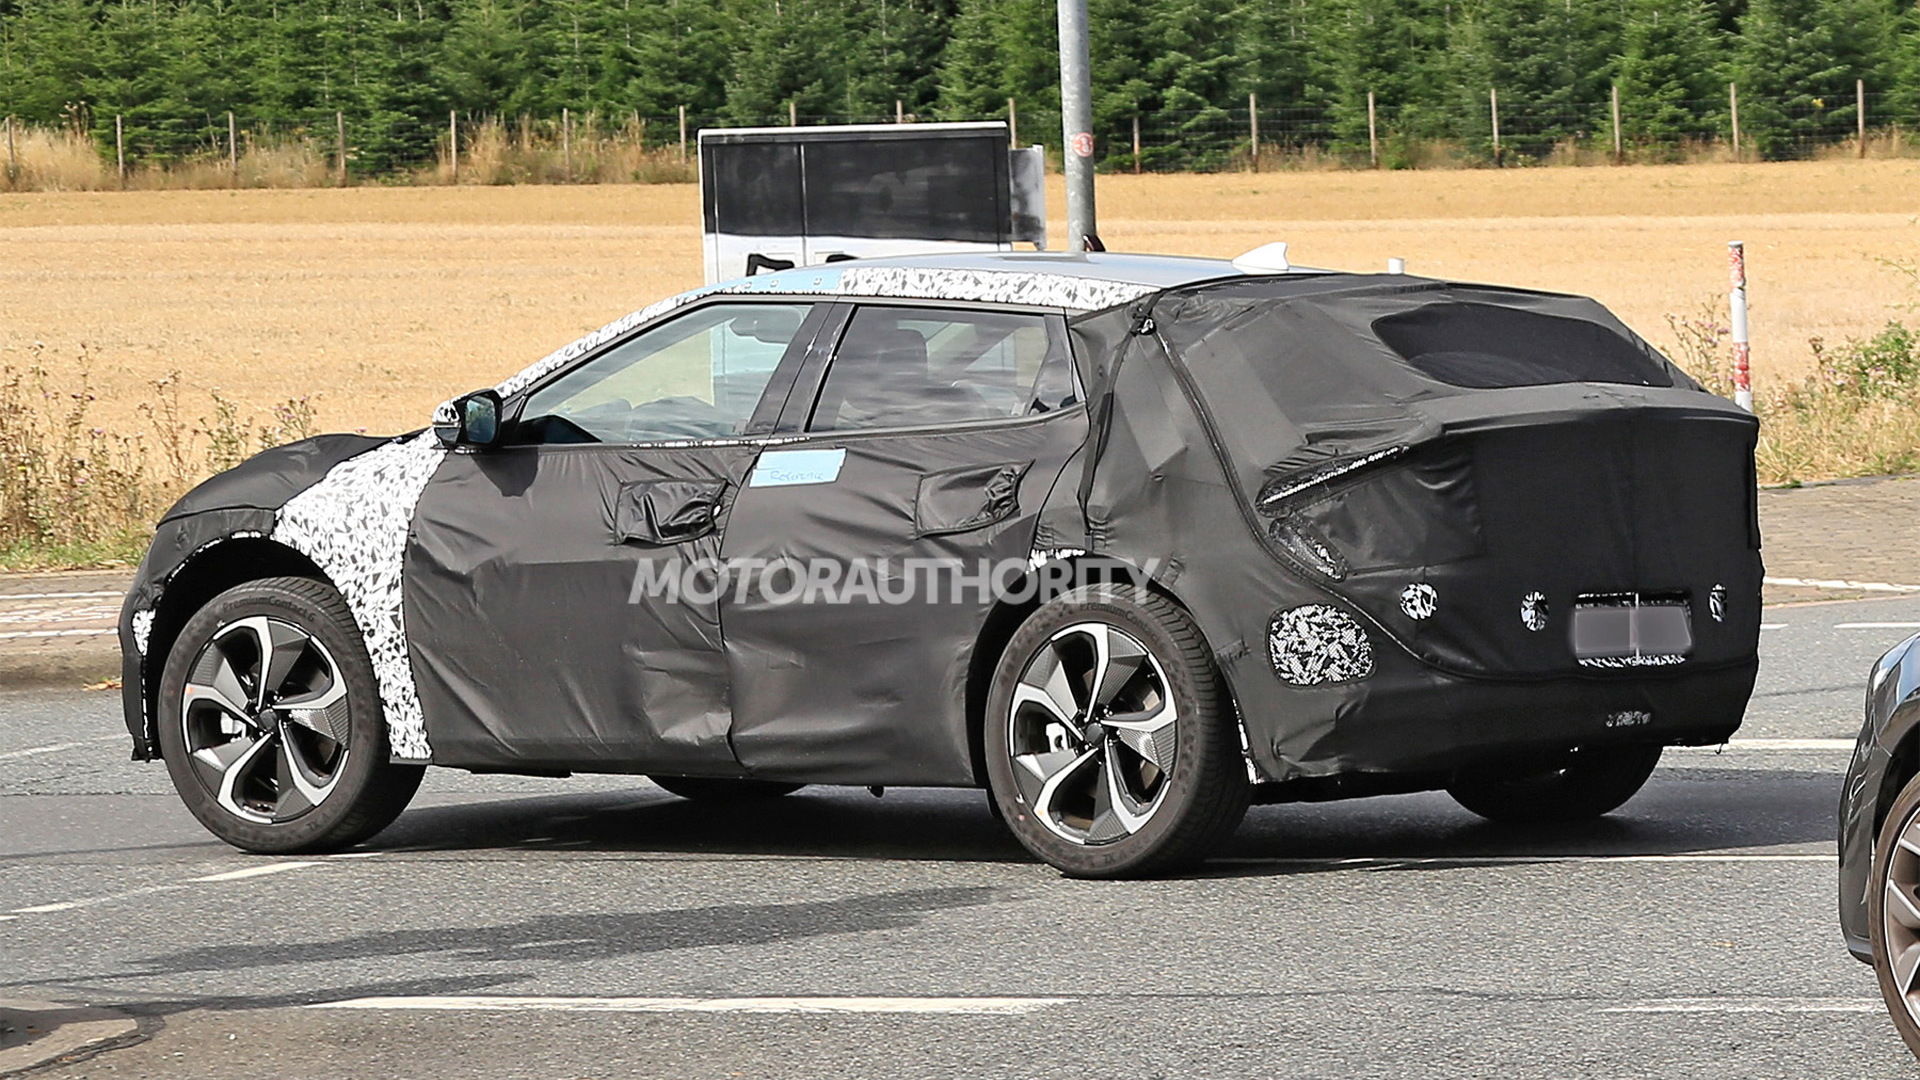 2022 Kia electric hatch spy shots - Photo credit: S. Baldauf/SB-Medien